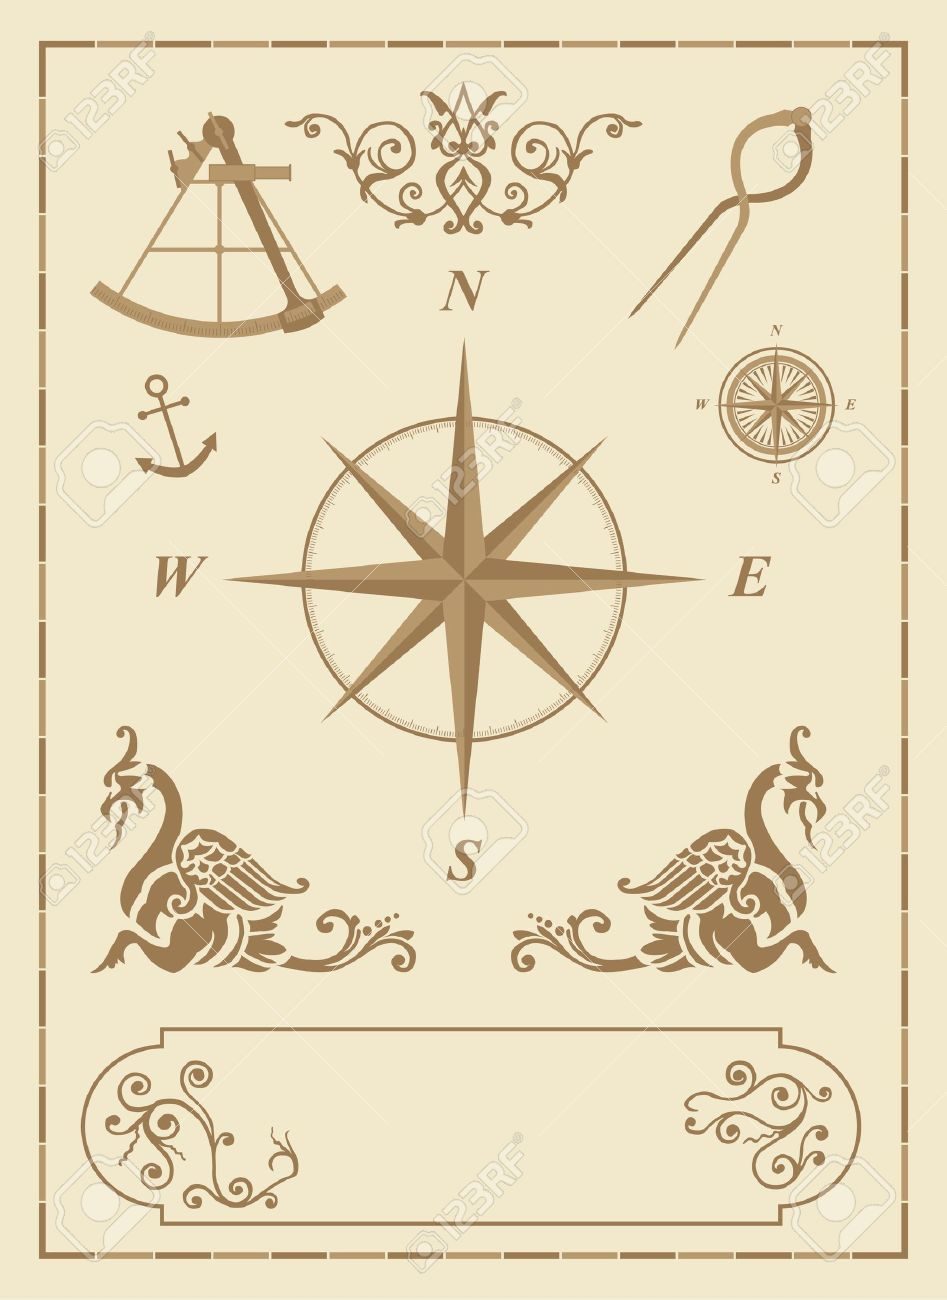 Set of old nautical symbols and icons with vintage map design set of old nautical symbols and icons with vintage map design elements stock photo 4935693 biocorpaavc